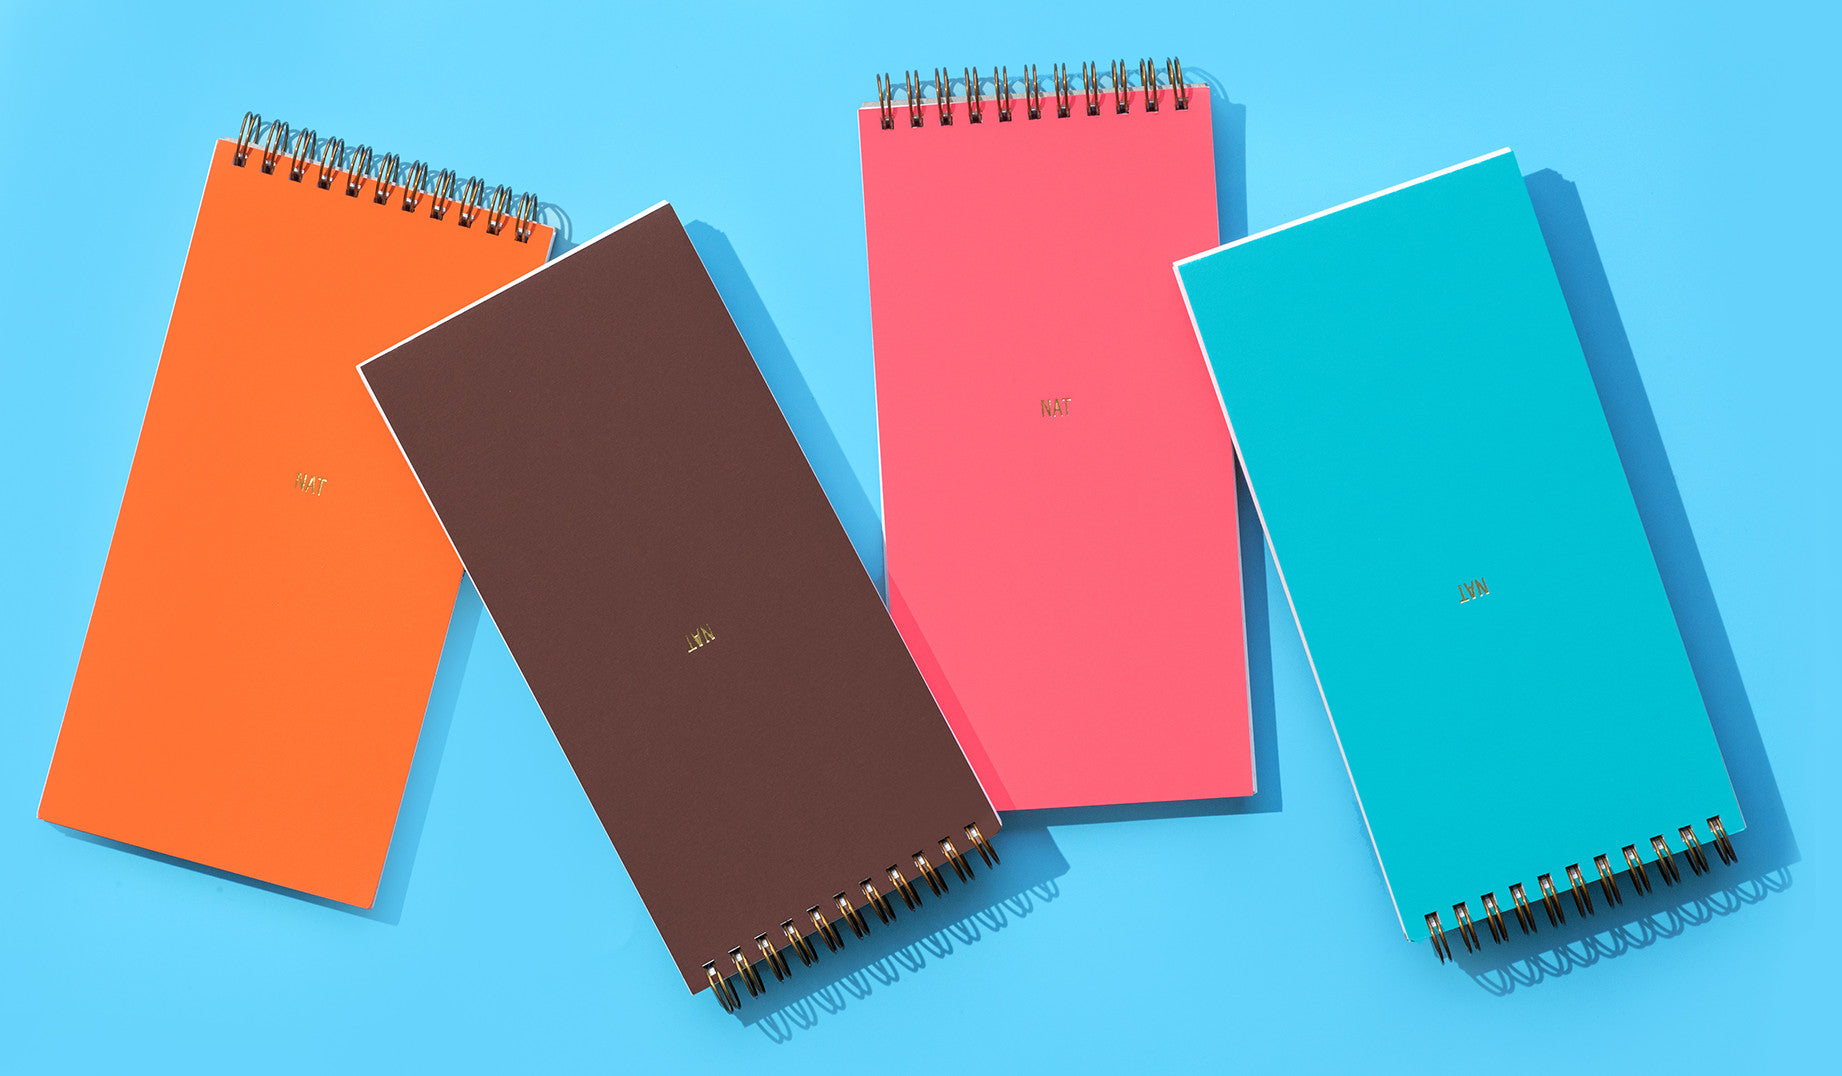 Based on the format of the traditional reporter's notebook, Commune's Designer's Notebooks add beauty to functionality with brightly colored covers in premium Astrobright papers and custom gold monogramming. Sold in sets of four with one each of Orbit Orange, Rocket Red, Terrestrial Teal, and Jupiter Java colored covers. Approximately 90 lined pages per notebook.